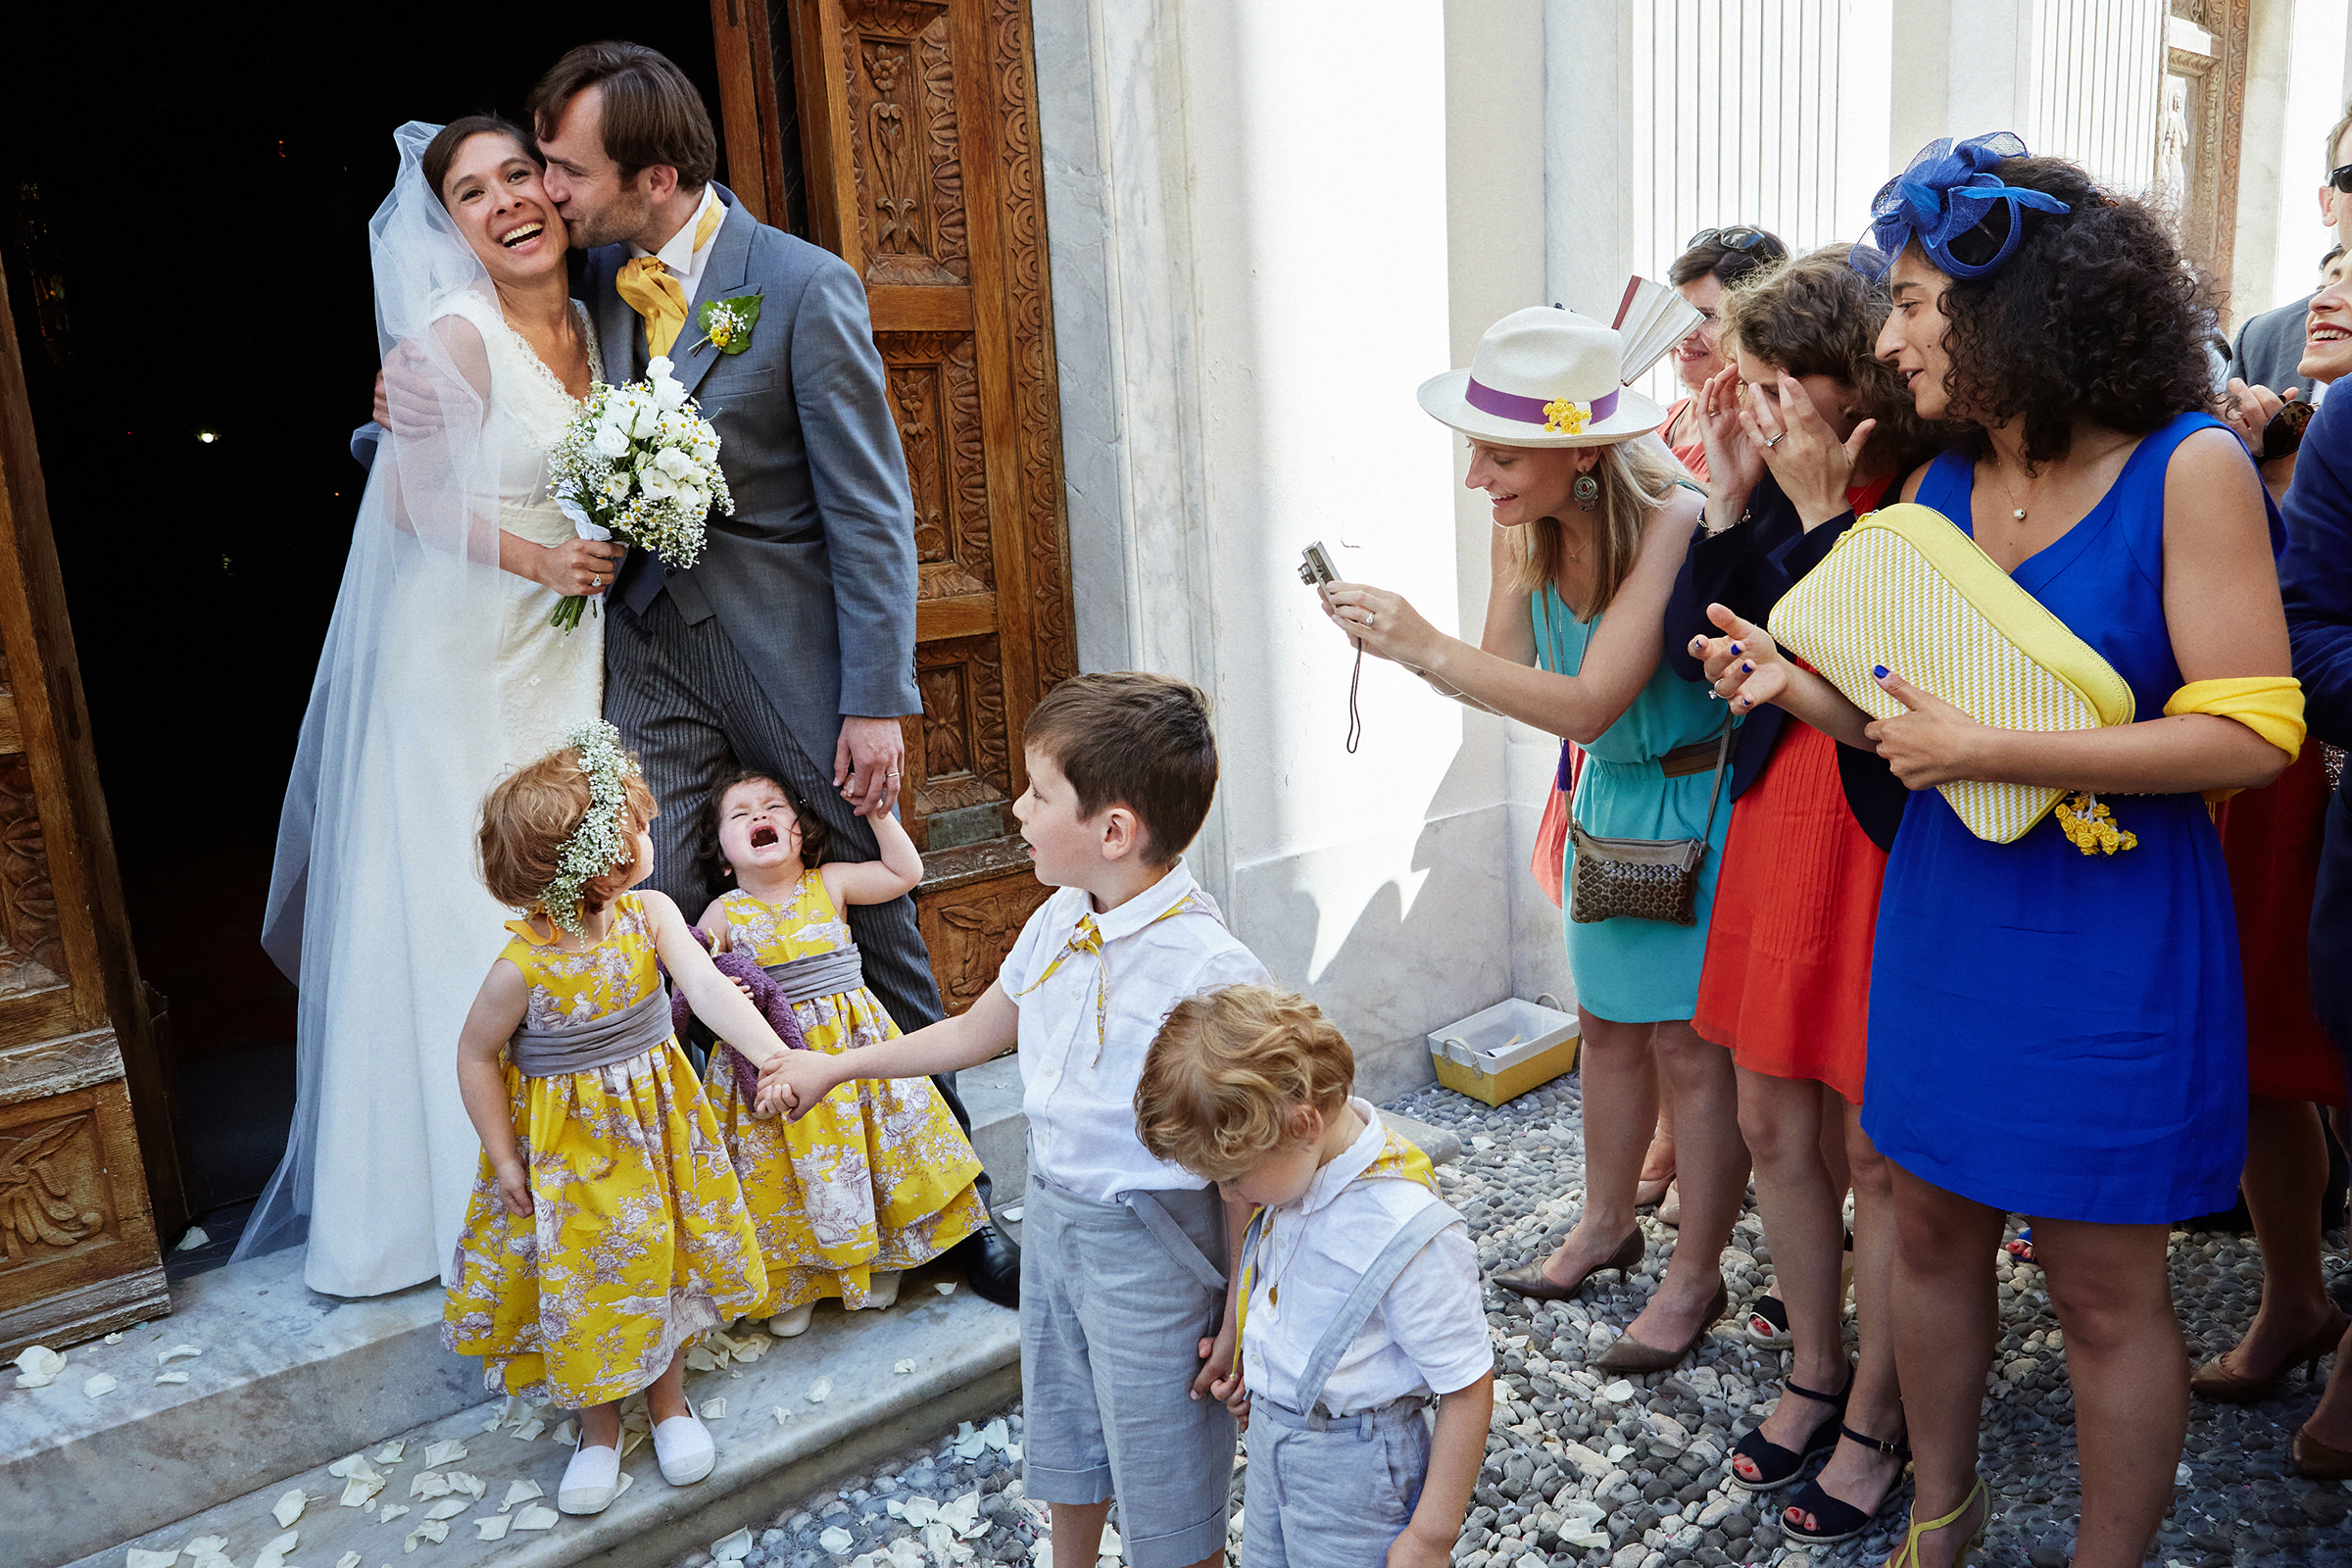 couple-kiss-amidst-small-children-and-guests-andrea-bagnasco-fotografie